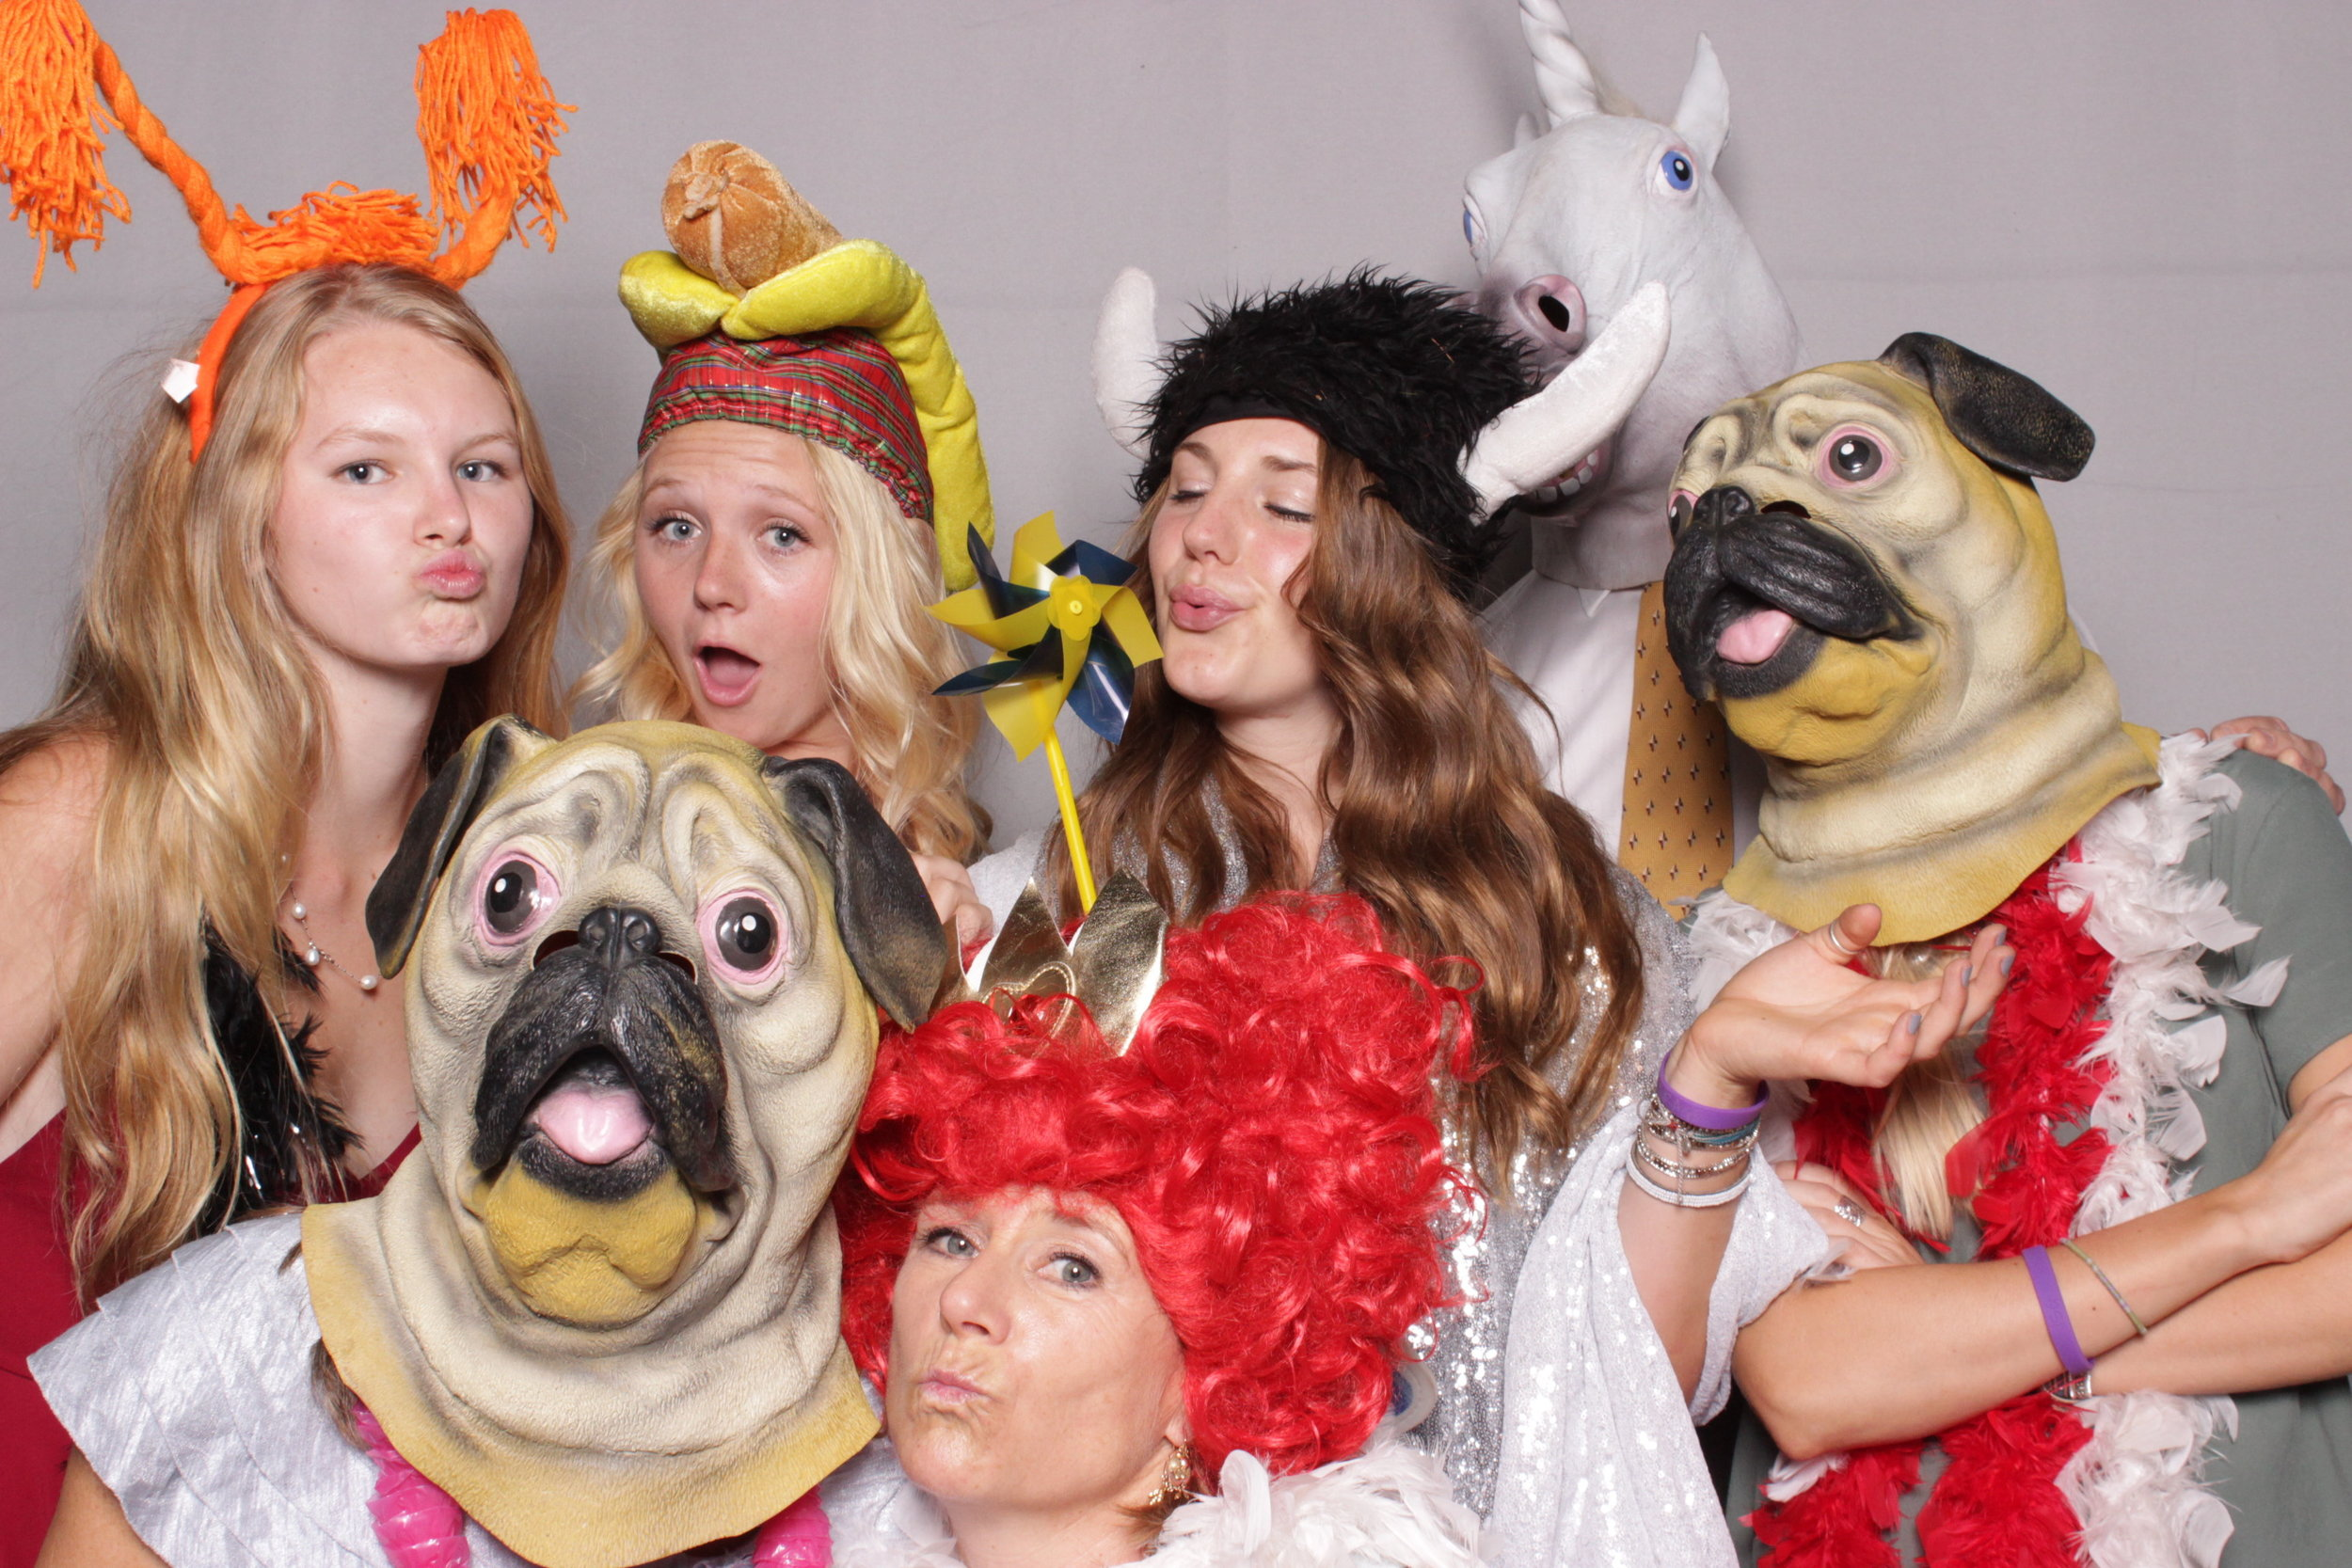 photo-booth-rental-chico-california-gale-vineyards-wedding-pug-fun